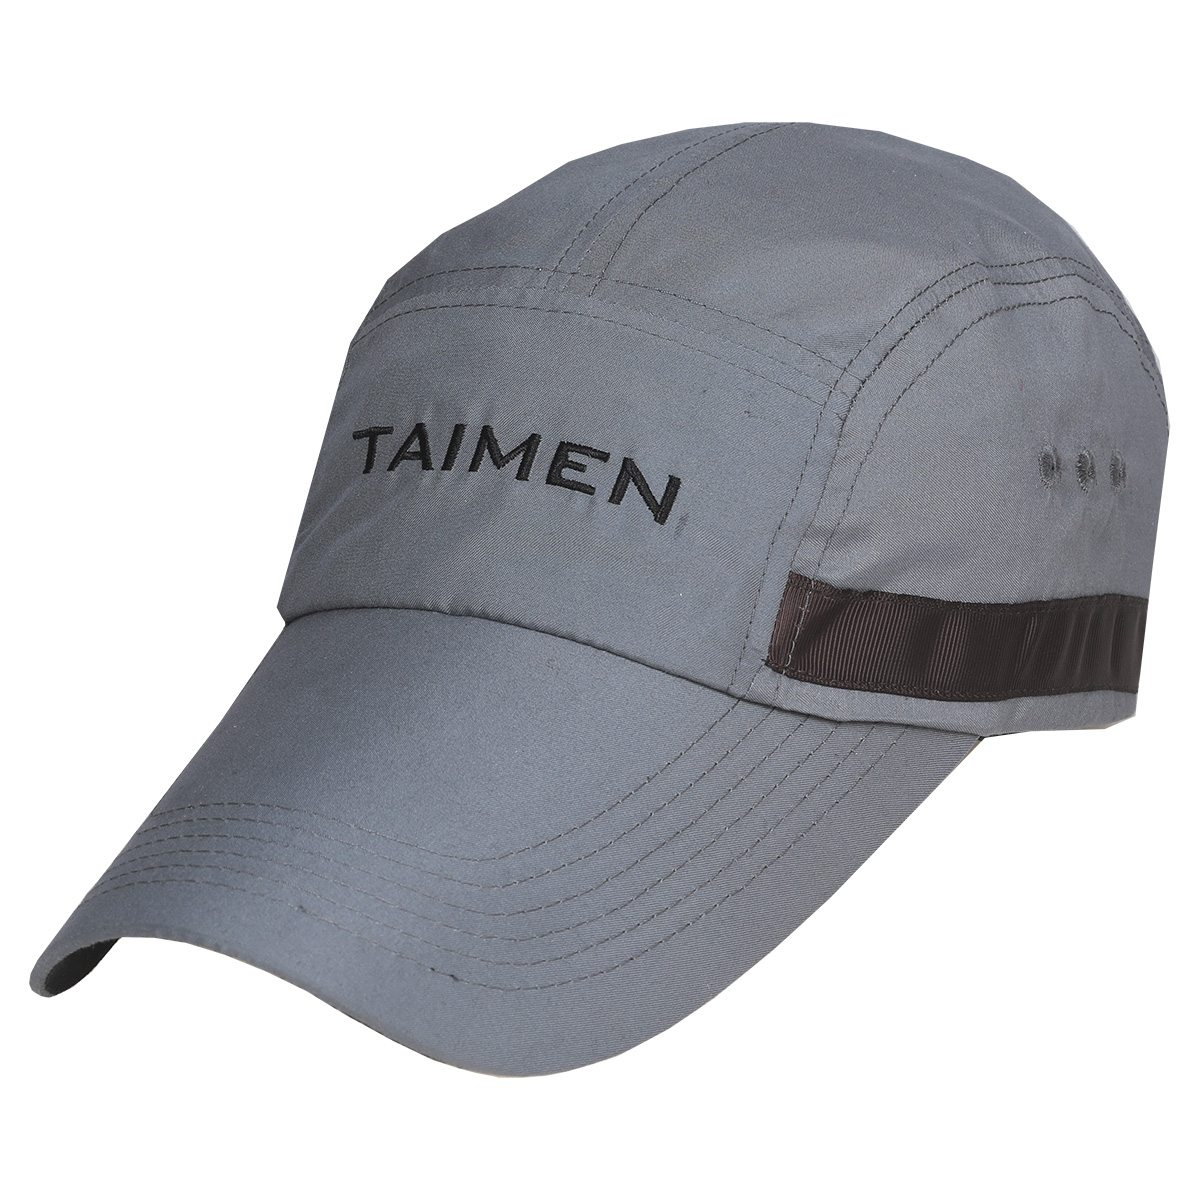 Taimen microfiber long bill cap fishing caps taimen for Long bill fishing hat